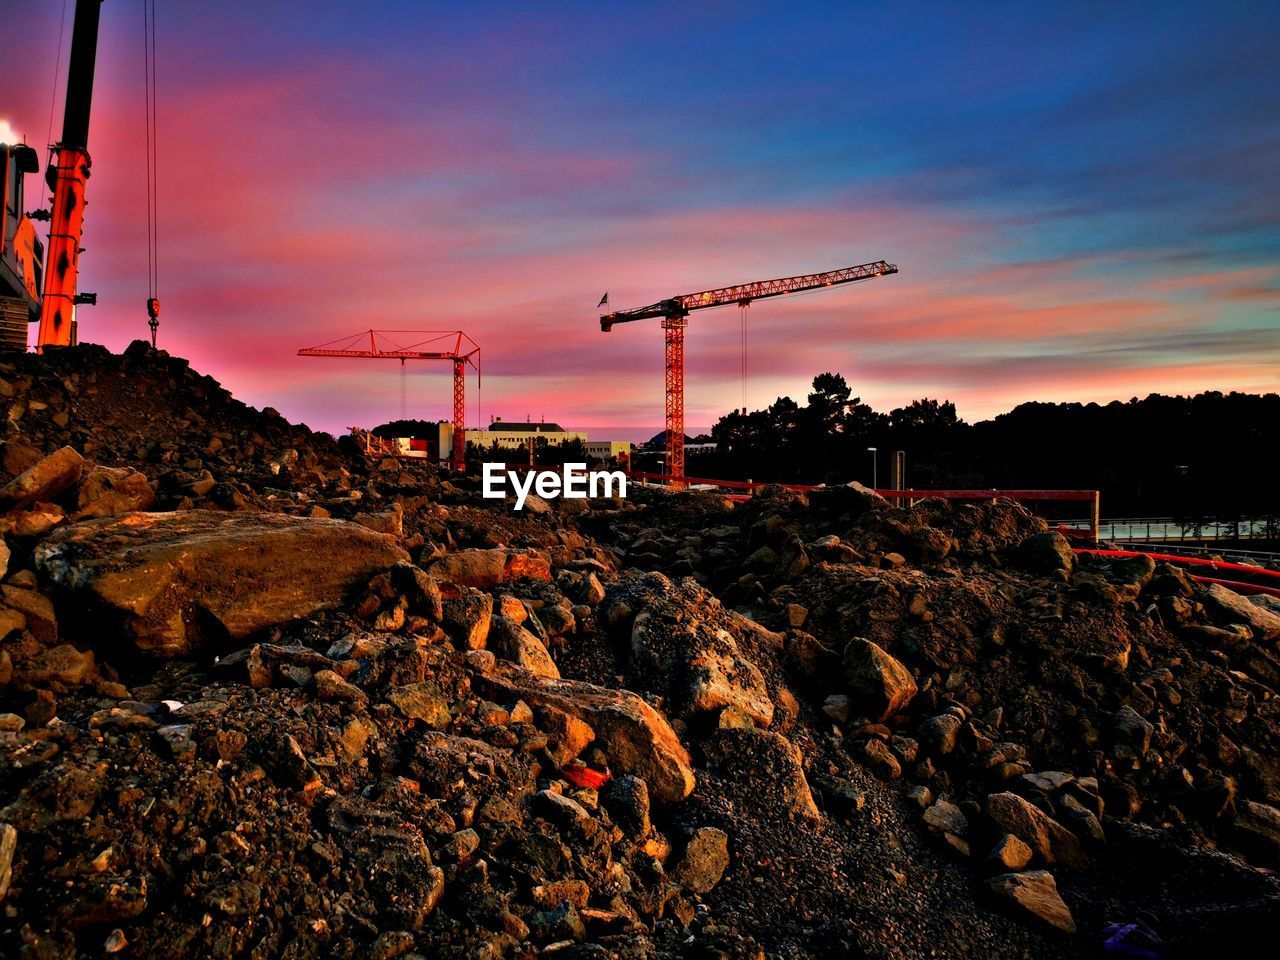 sky, sunset, rock, rock - object, solid, nature, crane - construction machinery, machinery, construction industry, industry, cloud - sky, construction site, no people, orange color, construction machinery, land, development, architecture, fuel and power generation, outdoors, industrial equipment, construction equipment, pollution